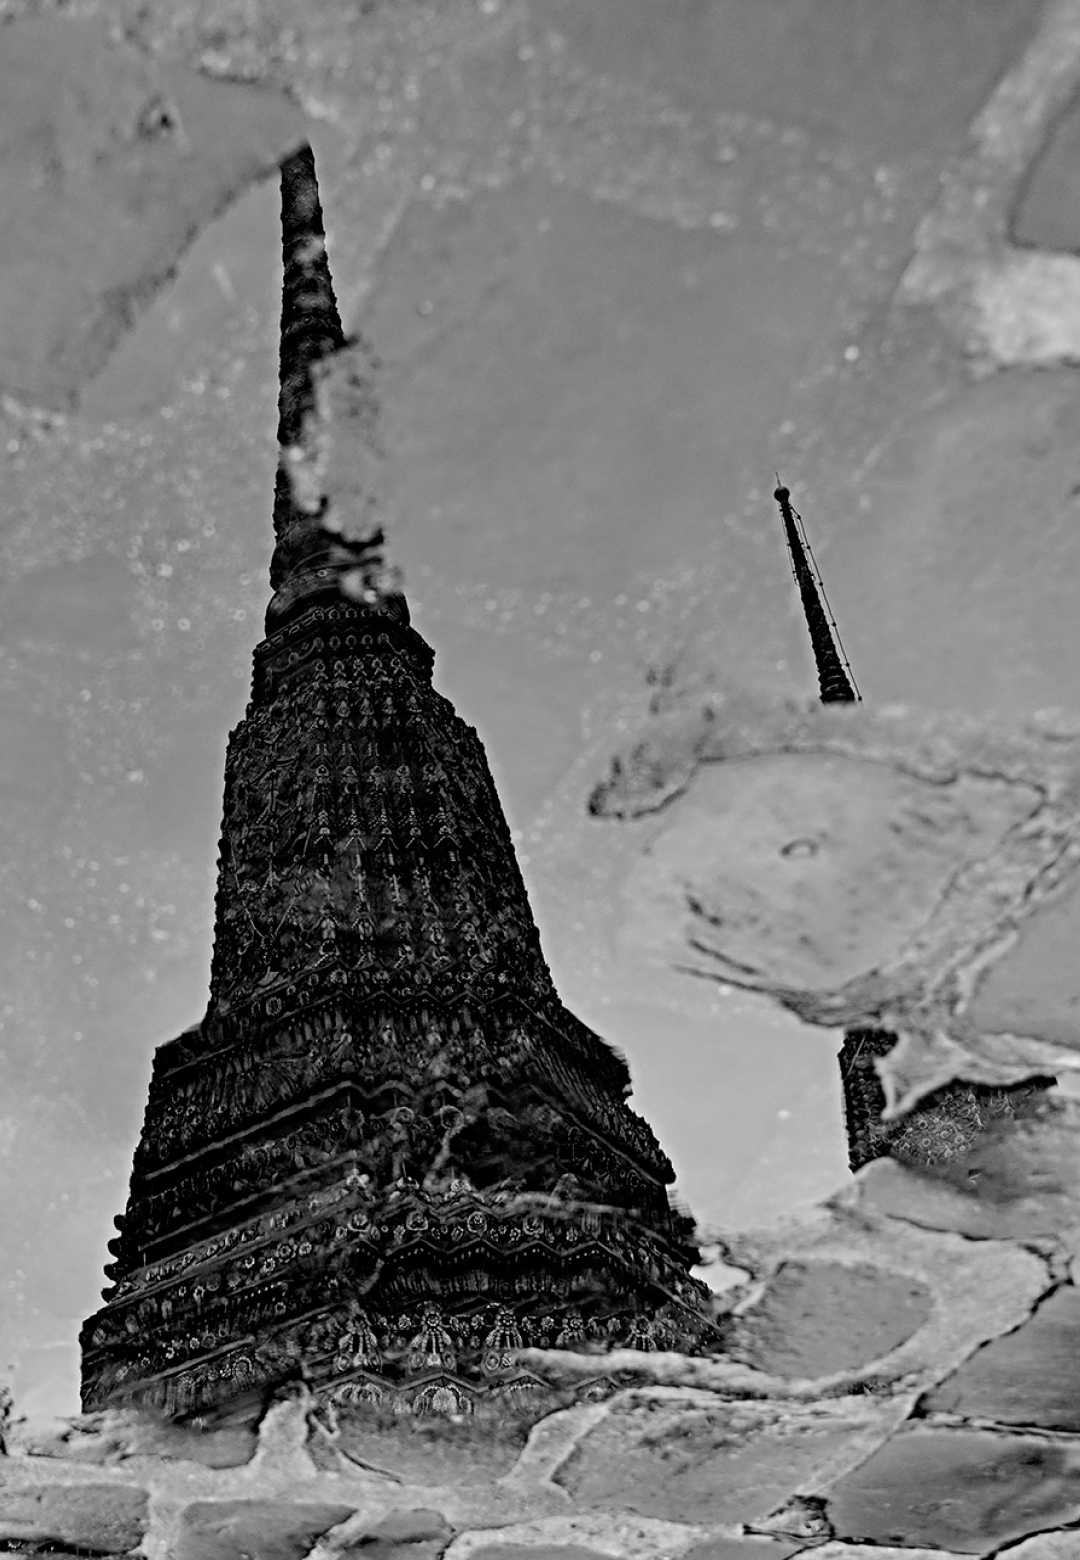 Sandeep Biswas captures the slender towering pagoda in Bangkok, Thailand | Sandeep Biswas | STIRworld